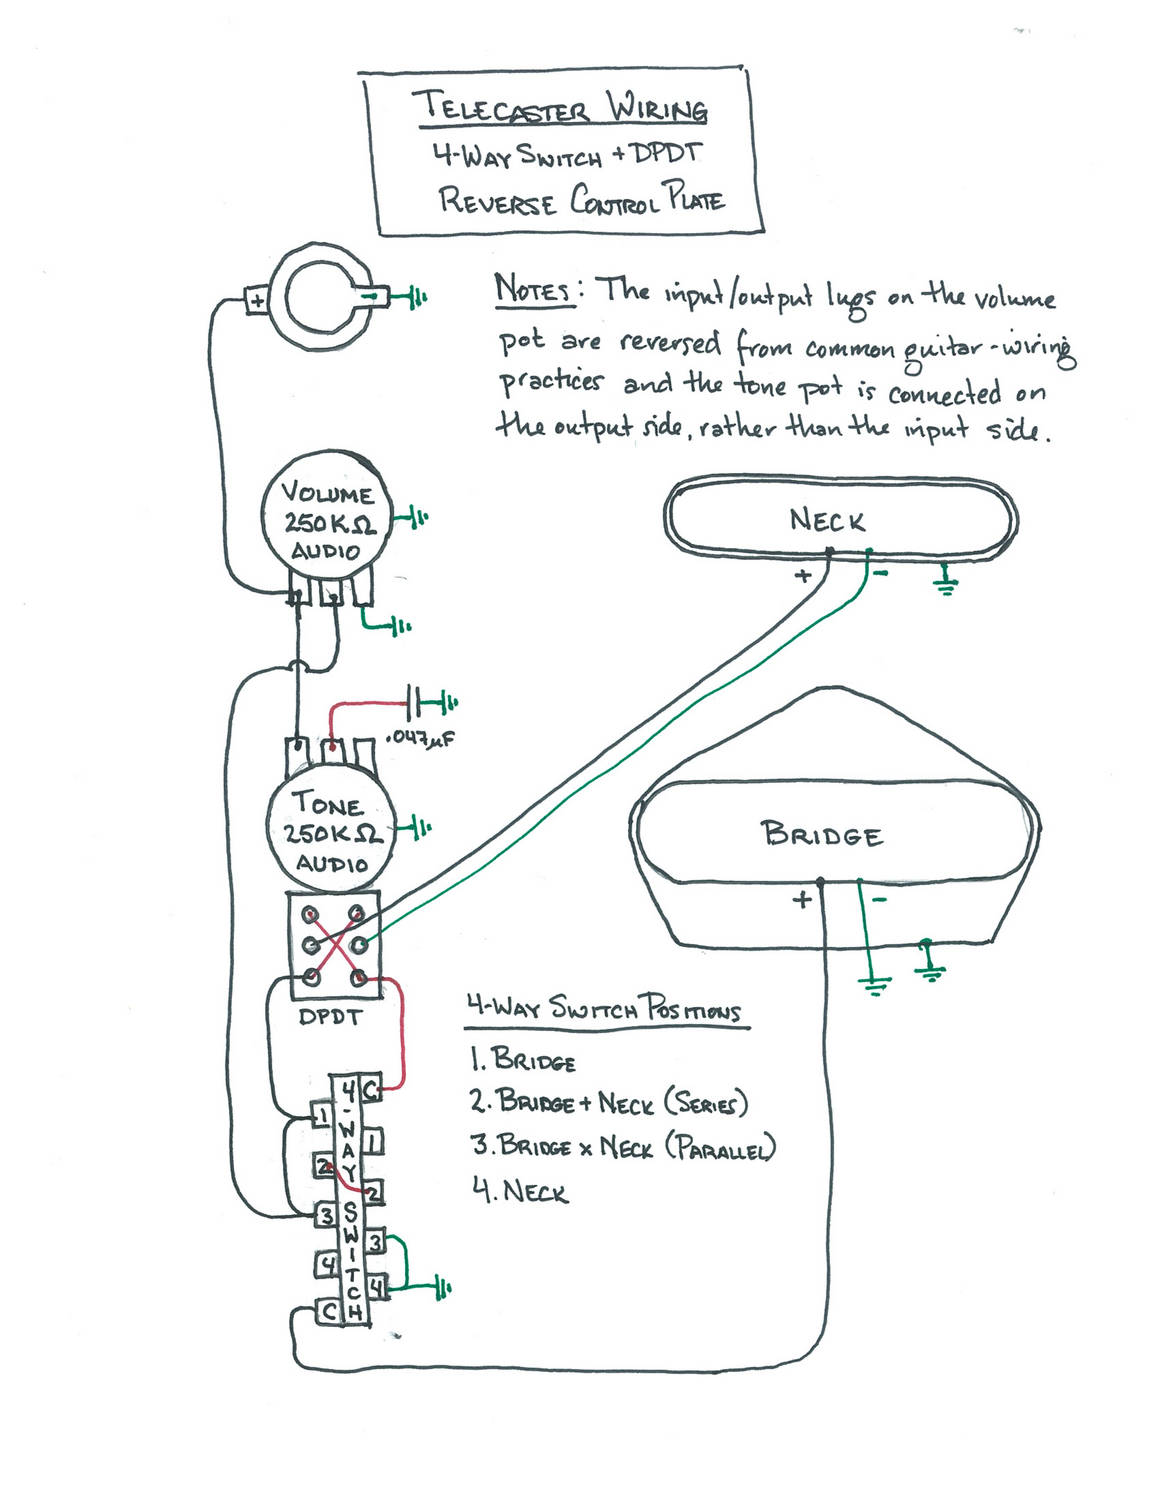 72 Telecaster Deluxe Wiring Diagram - Database